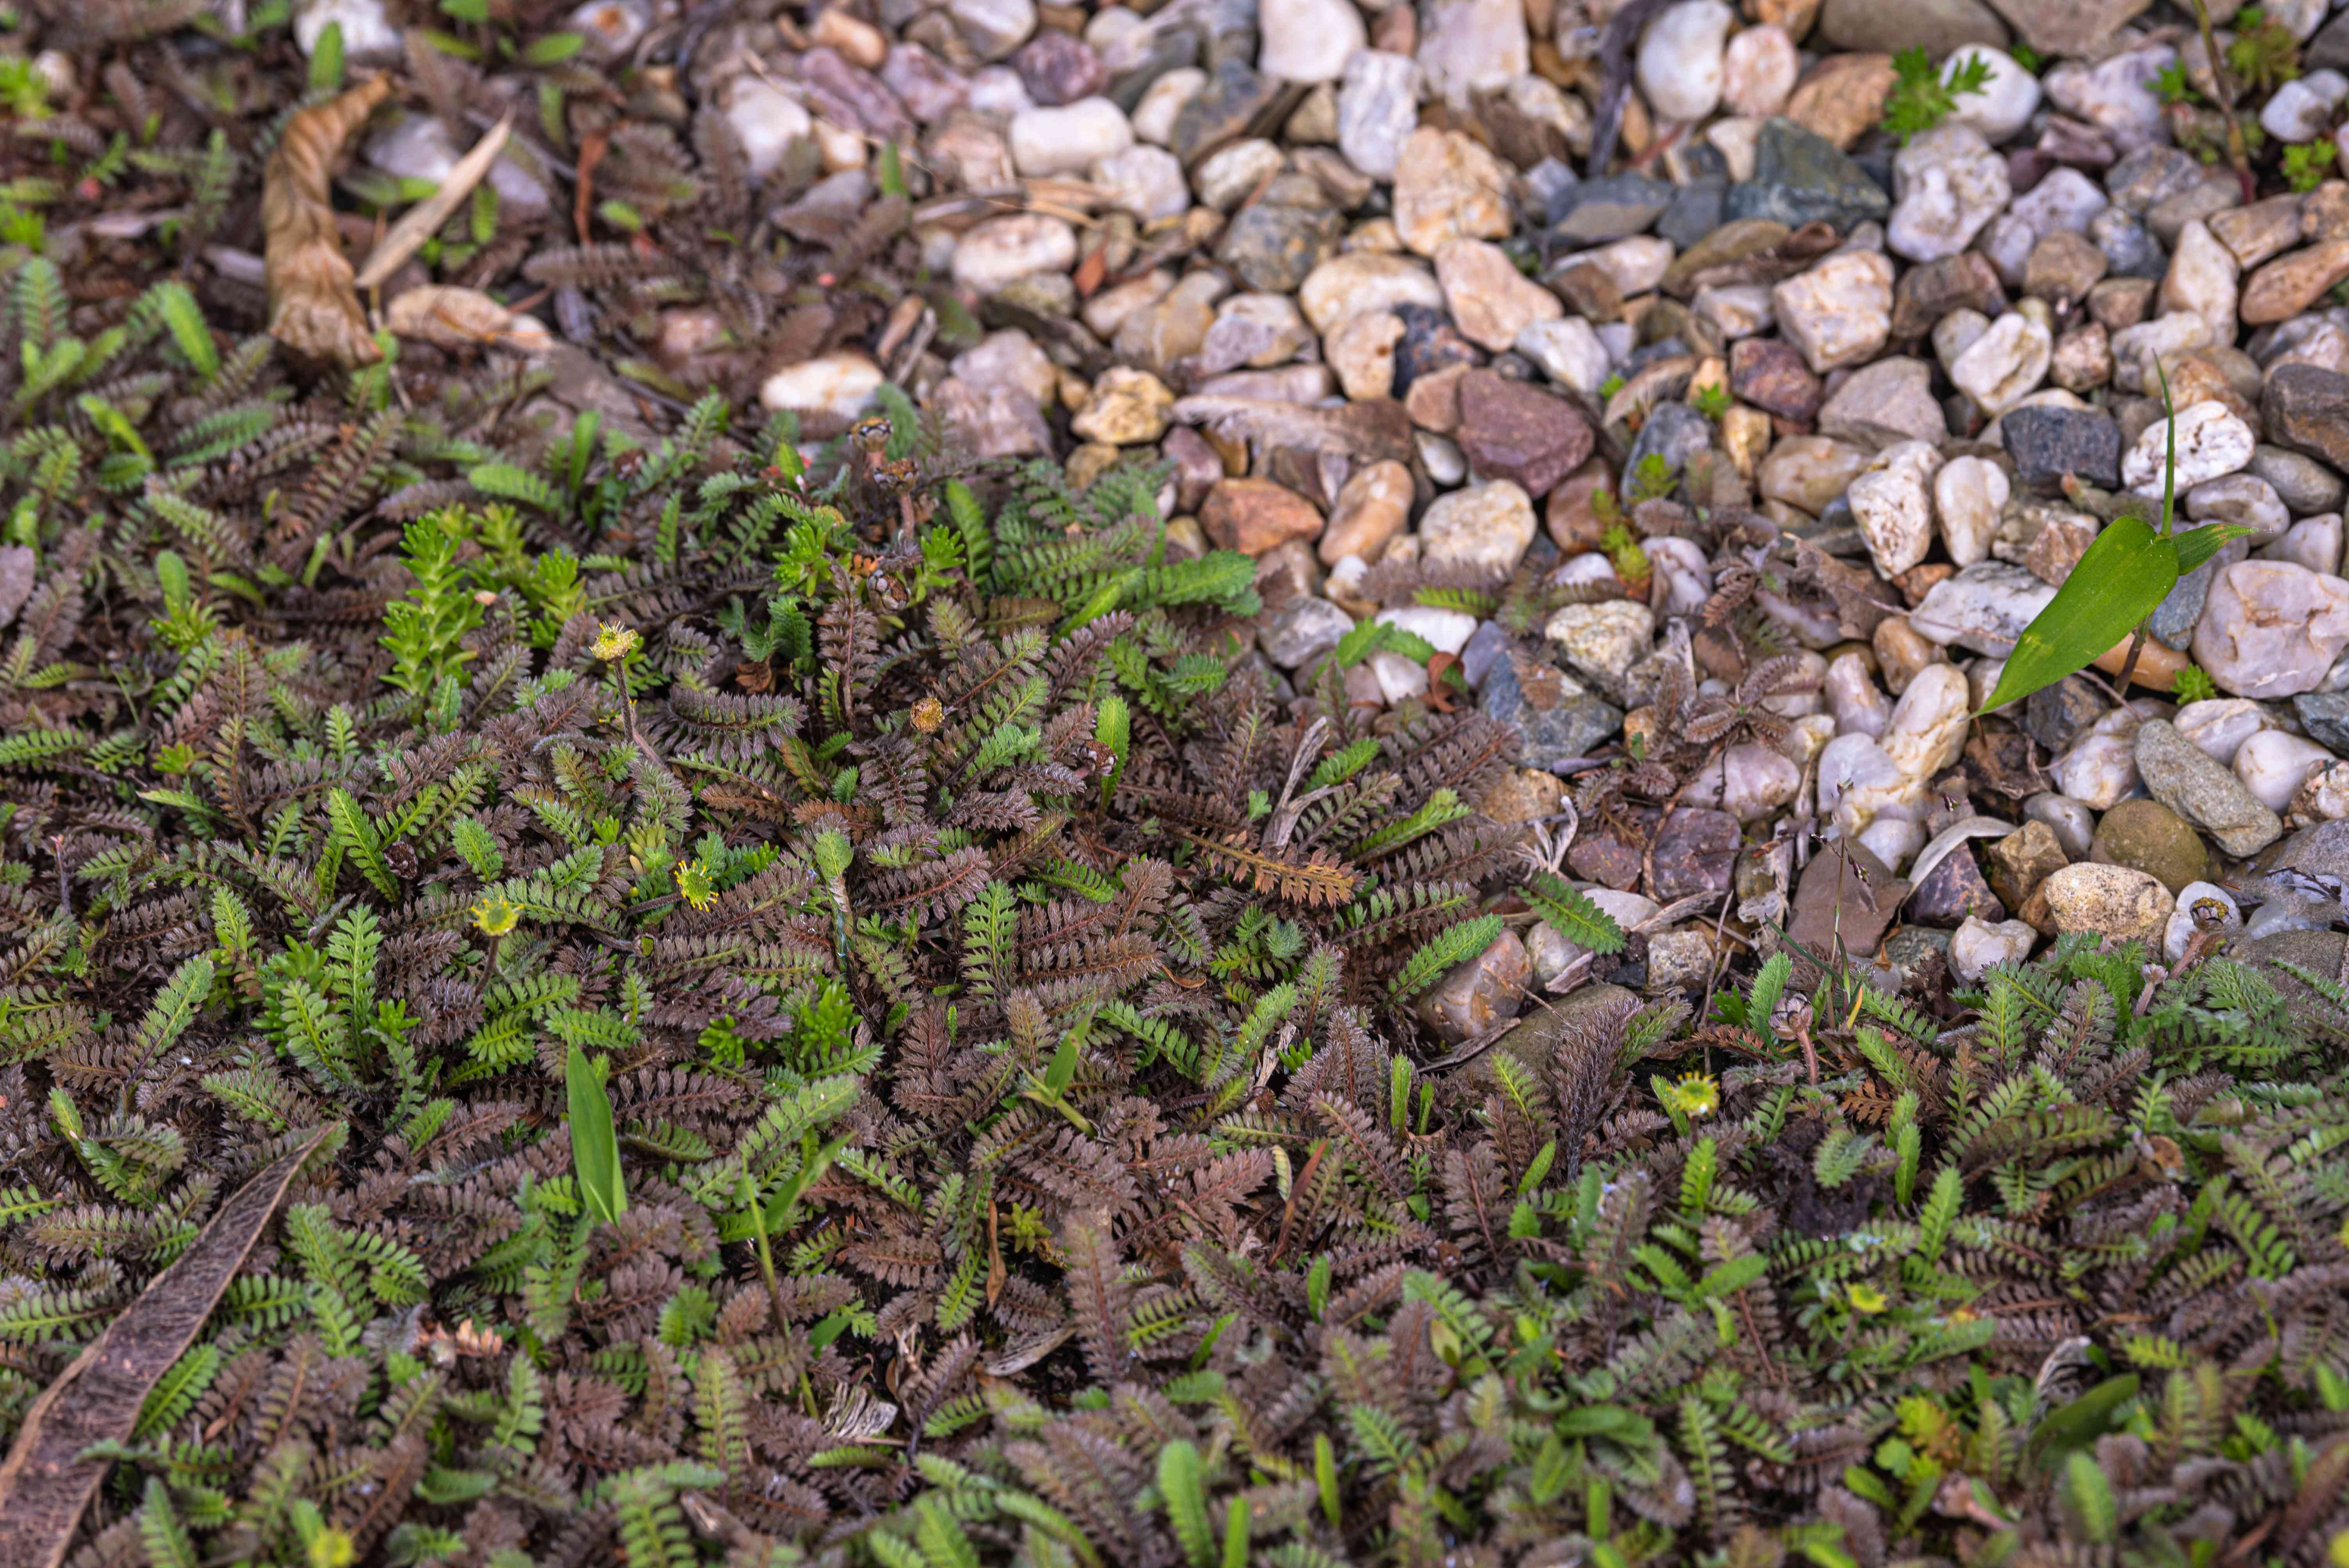 Brass buttons plant with purplish and green ferny foliage next to small rocks